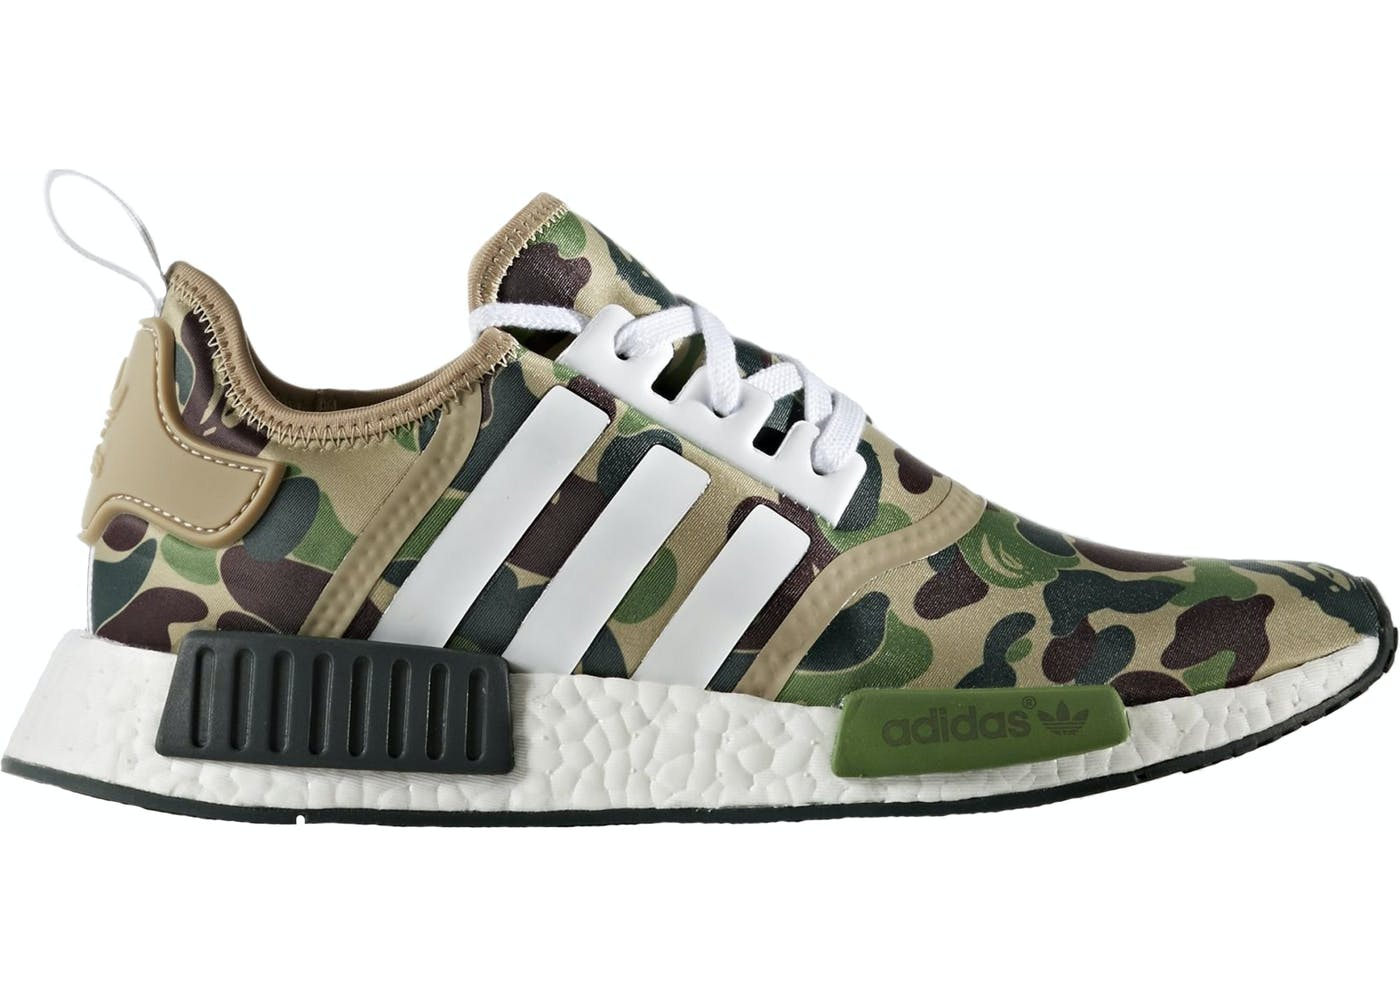 BAPE Has a Couple adidas Dame 4 Colorways in the Works